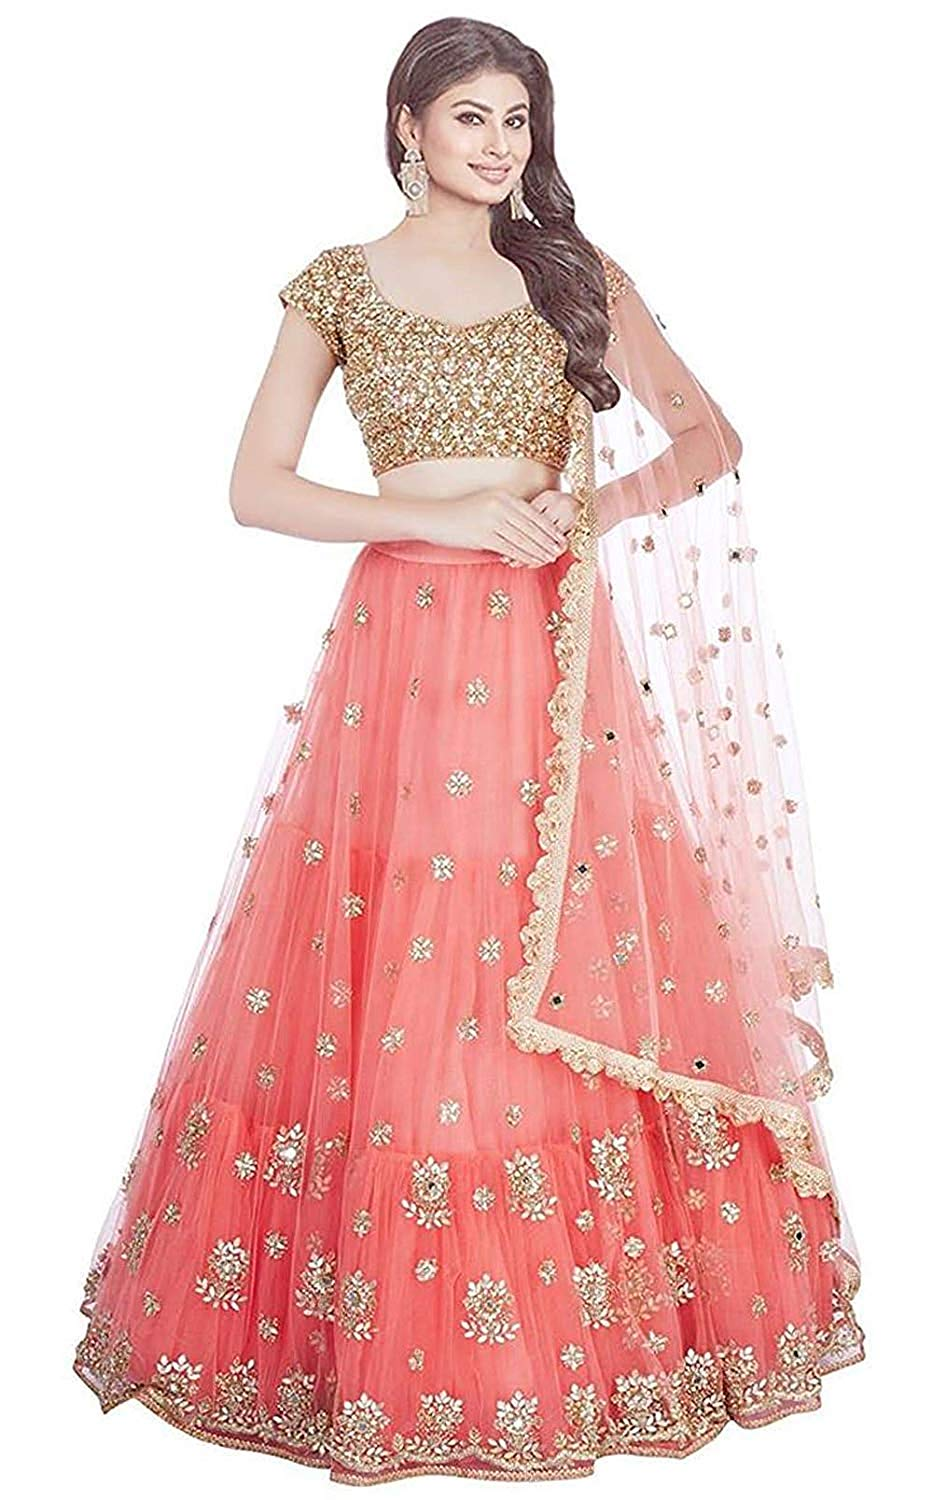 8b3f3c7343 Unique Gajari Pink - Golden Colored Silk Fabric Beautiful Indian Style ...